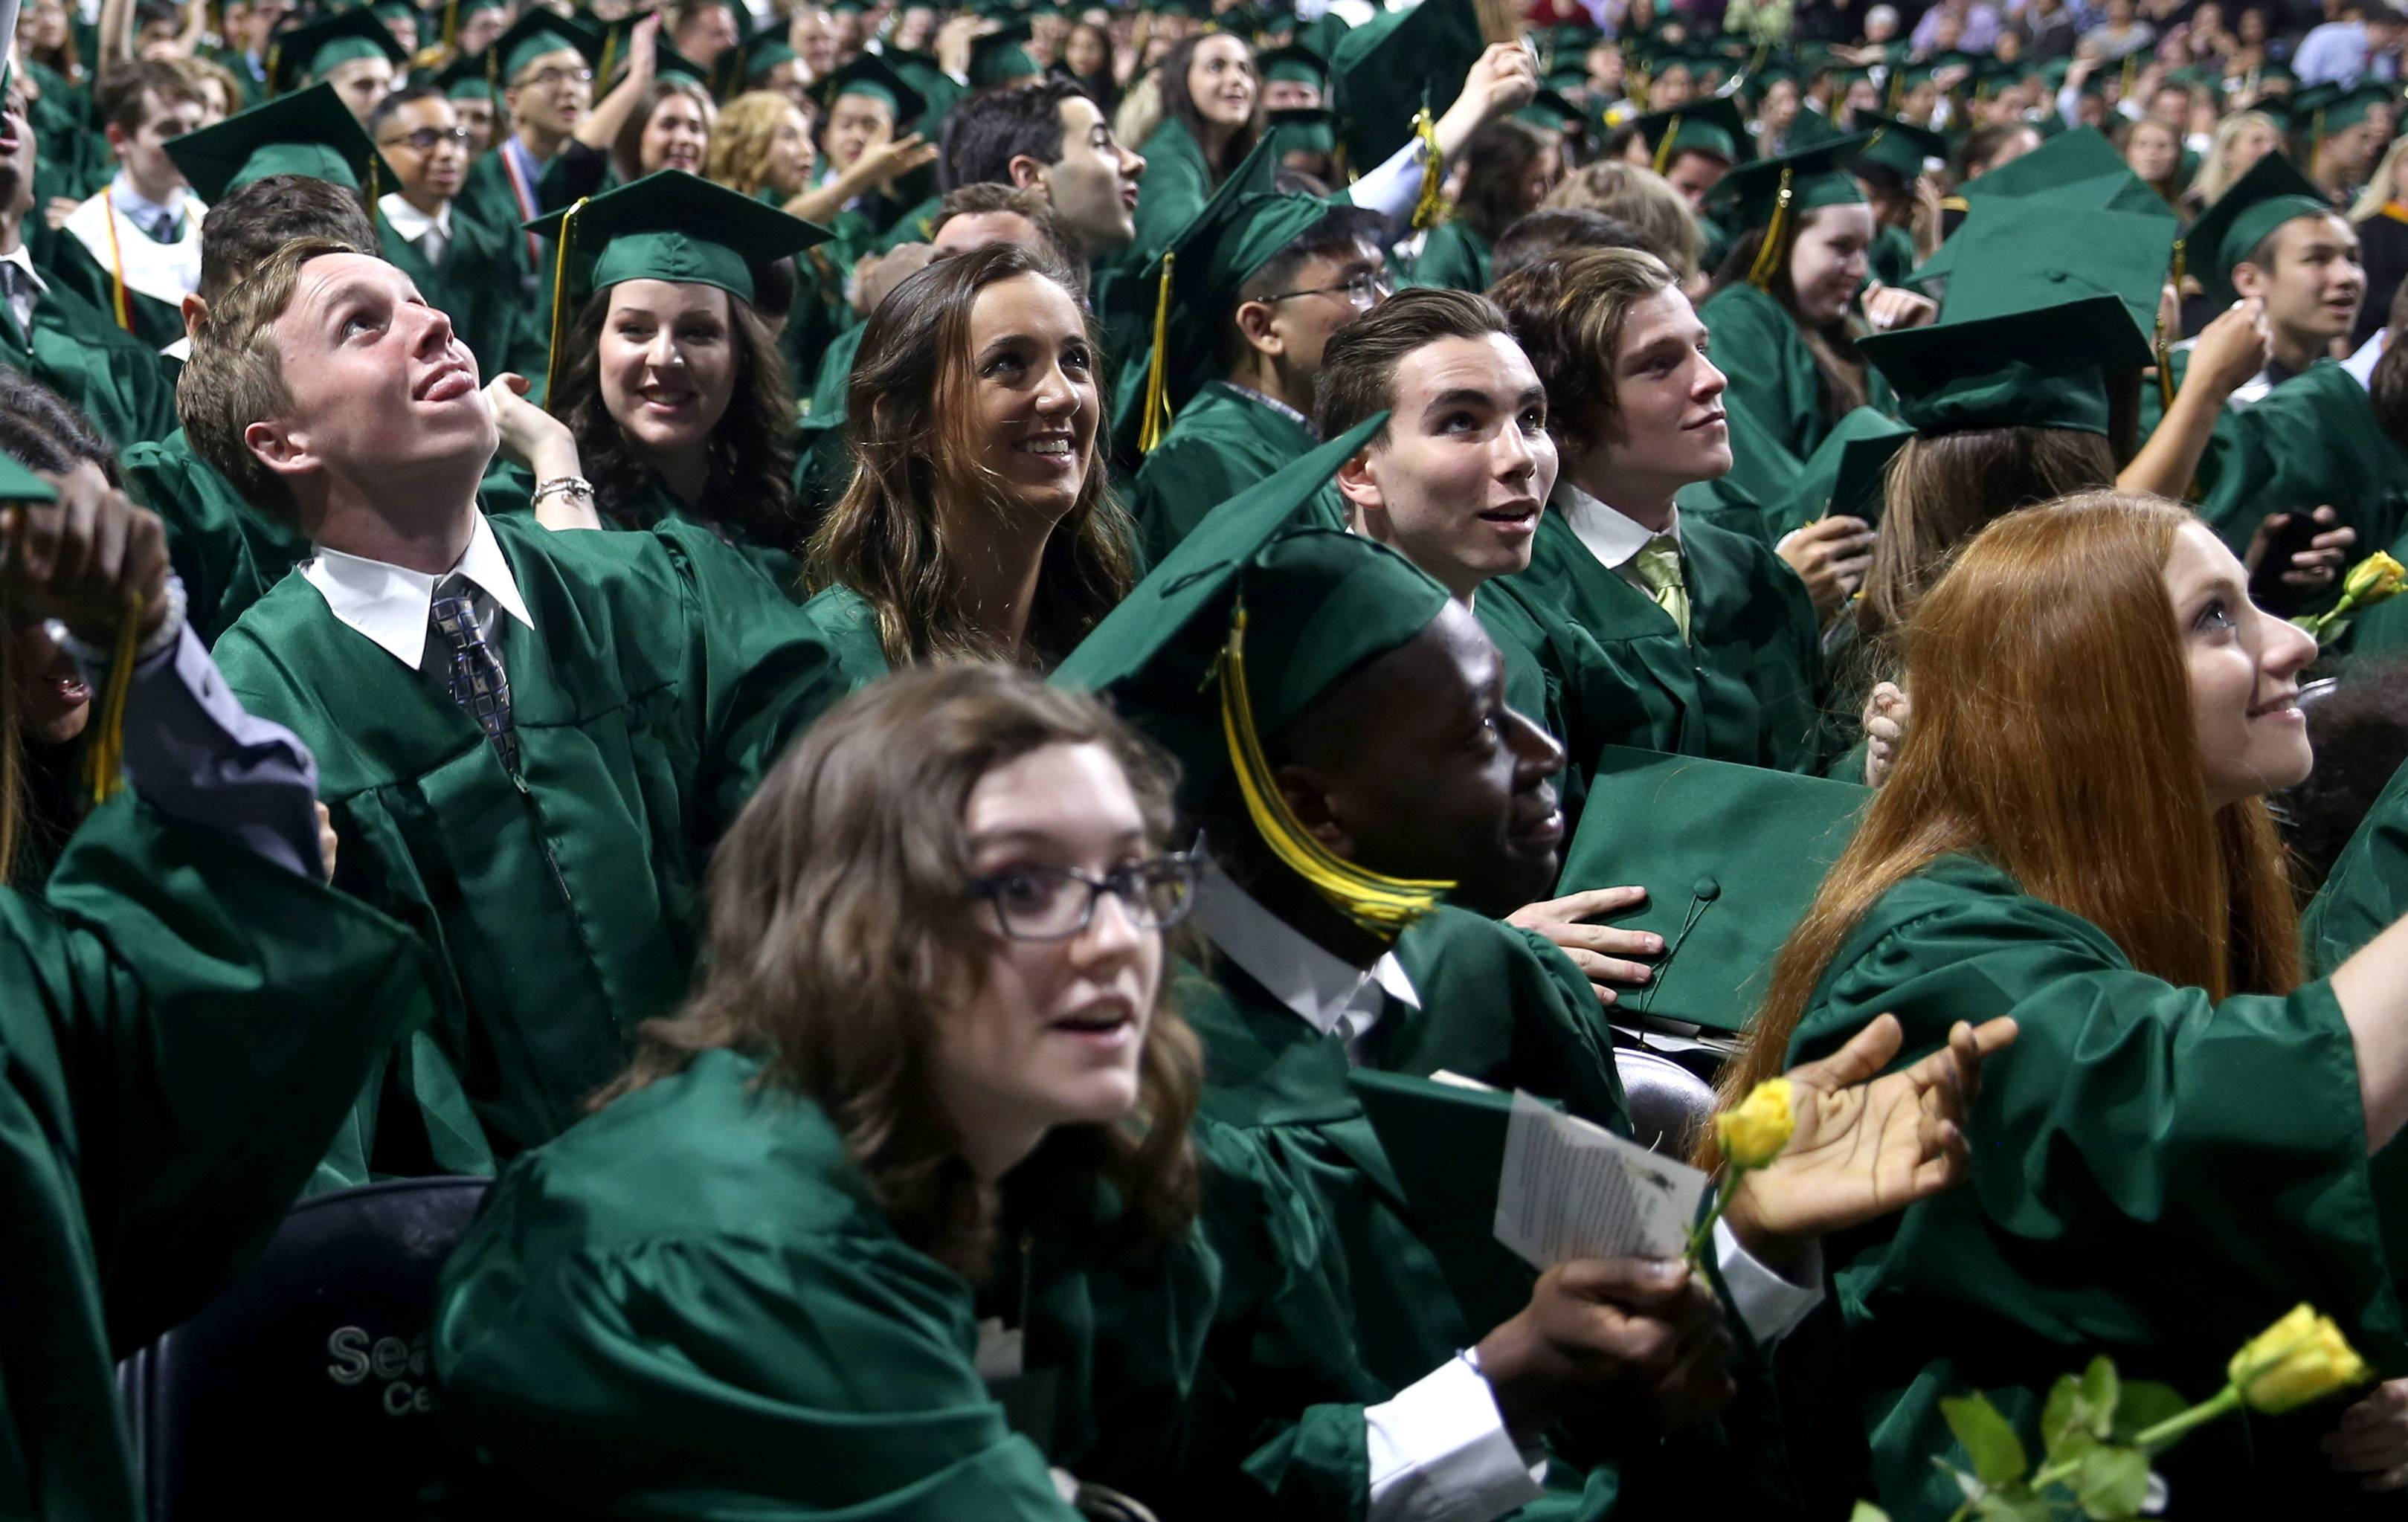 Images from the Stevenson High School graduation ceremony on Friday, May 26 at the Sears Centre in Hoffman Estates.